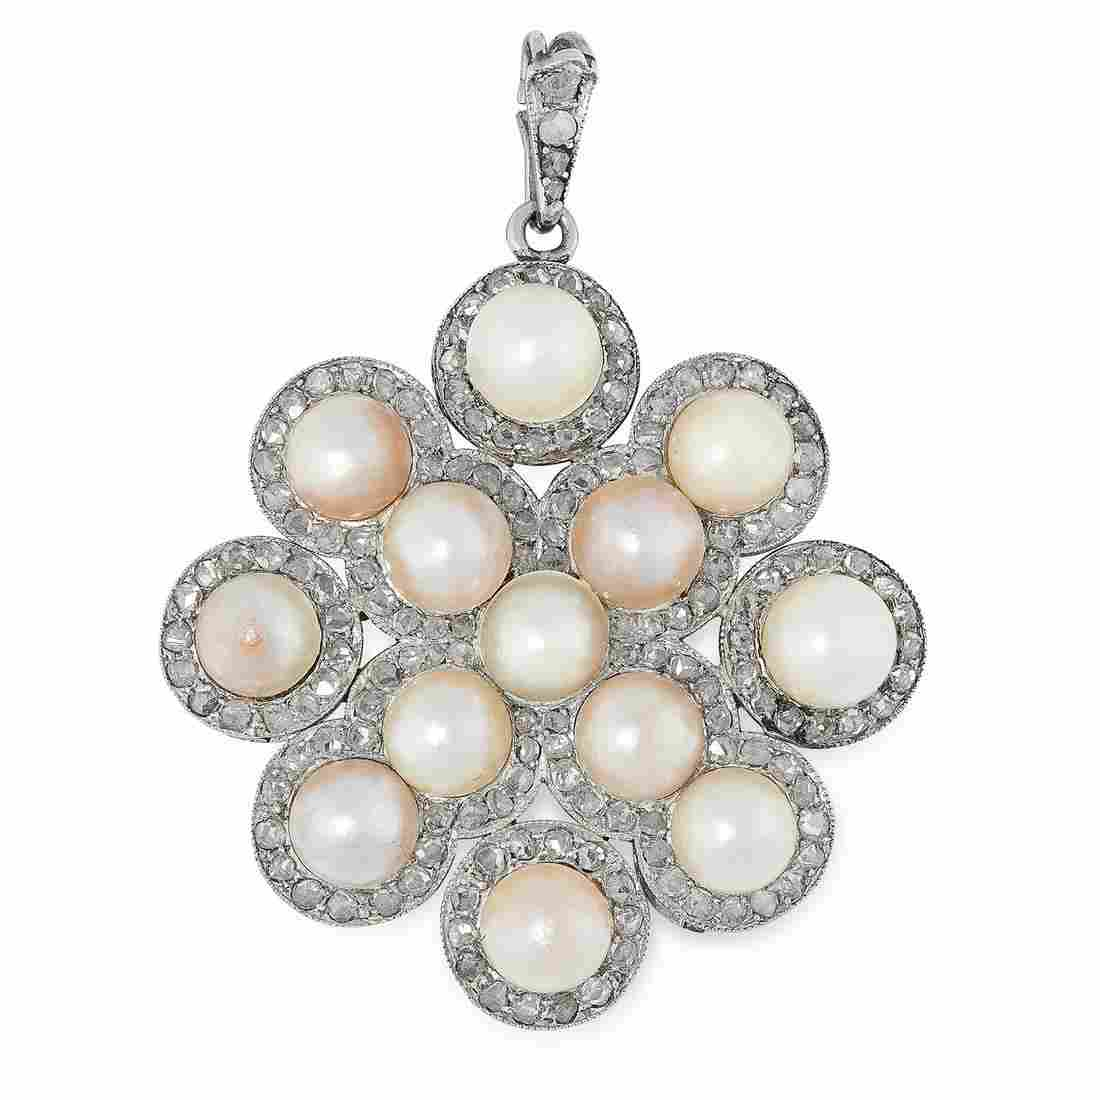 AN ANTIQUE NATURAL PEARL AND DIAMOND PENDANT, EARLY